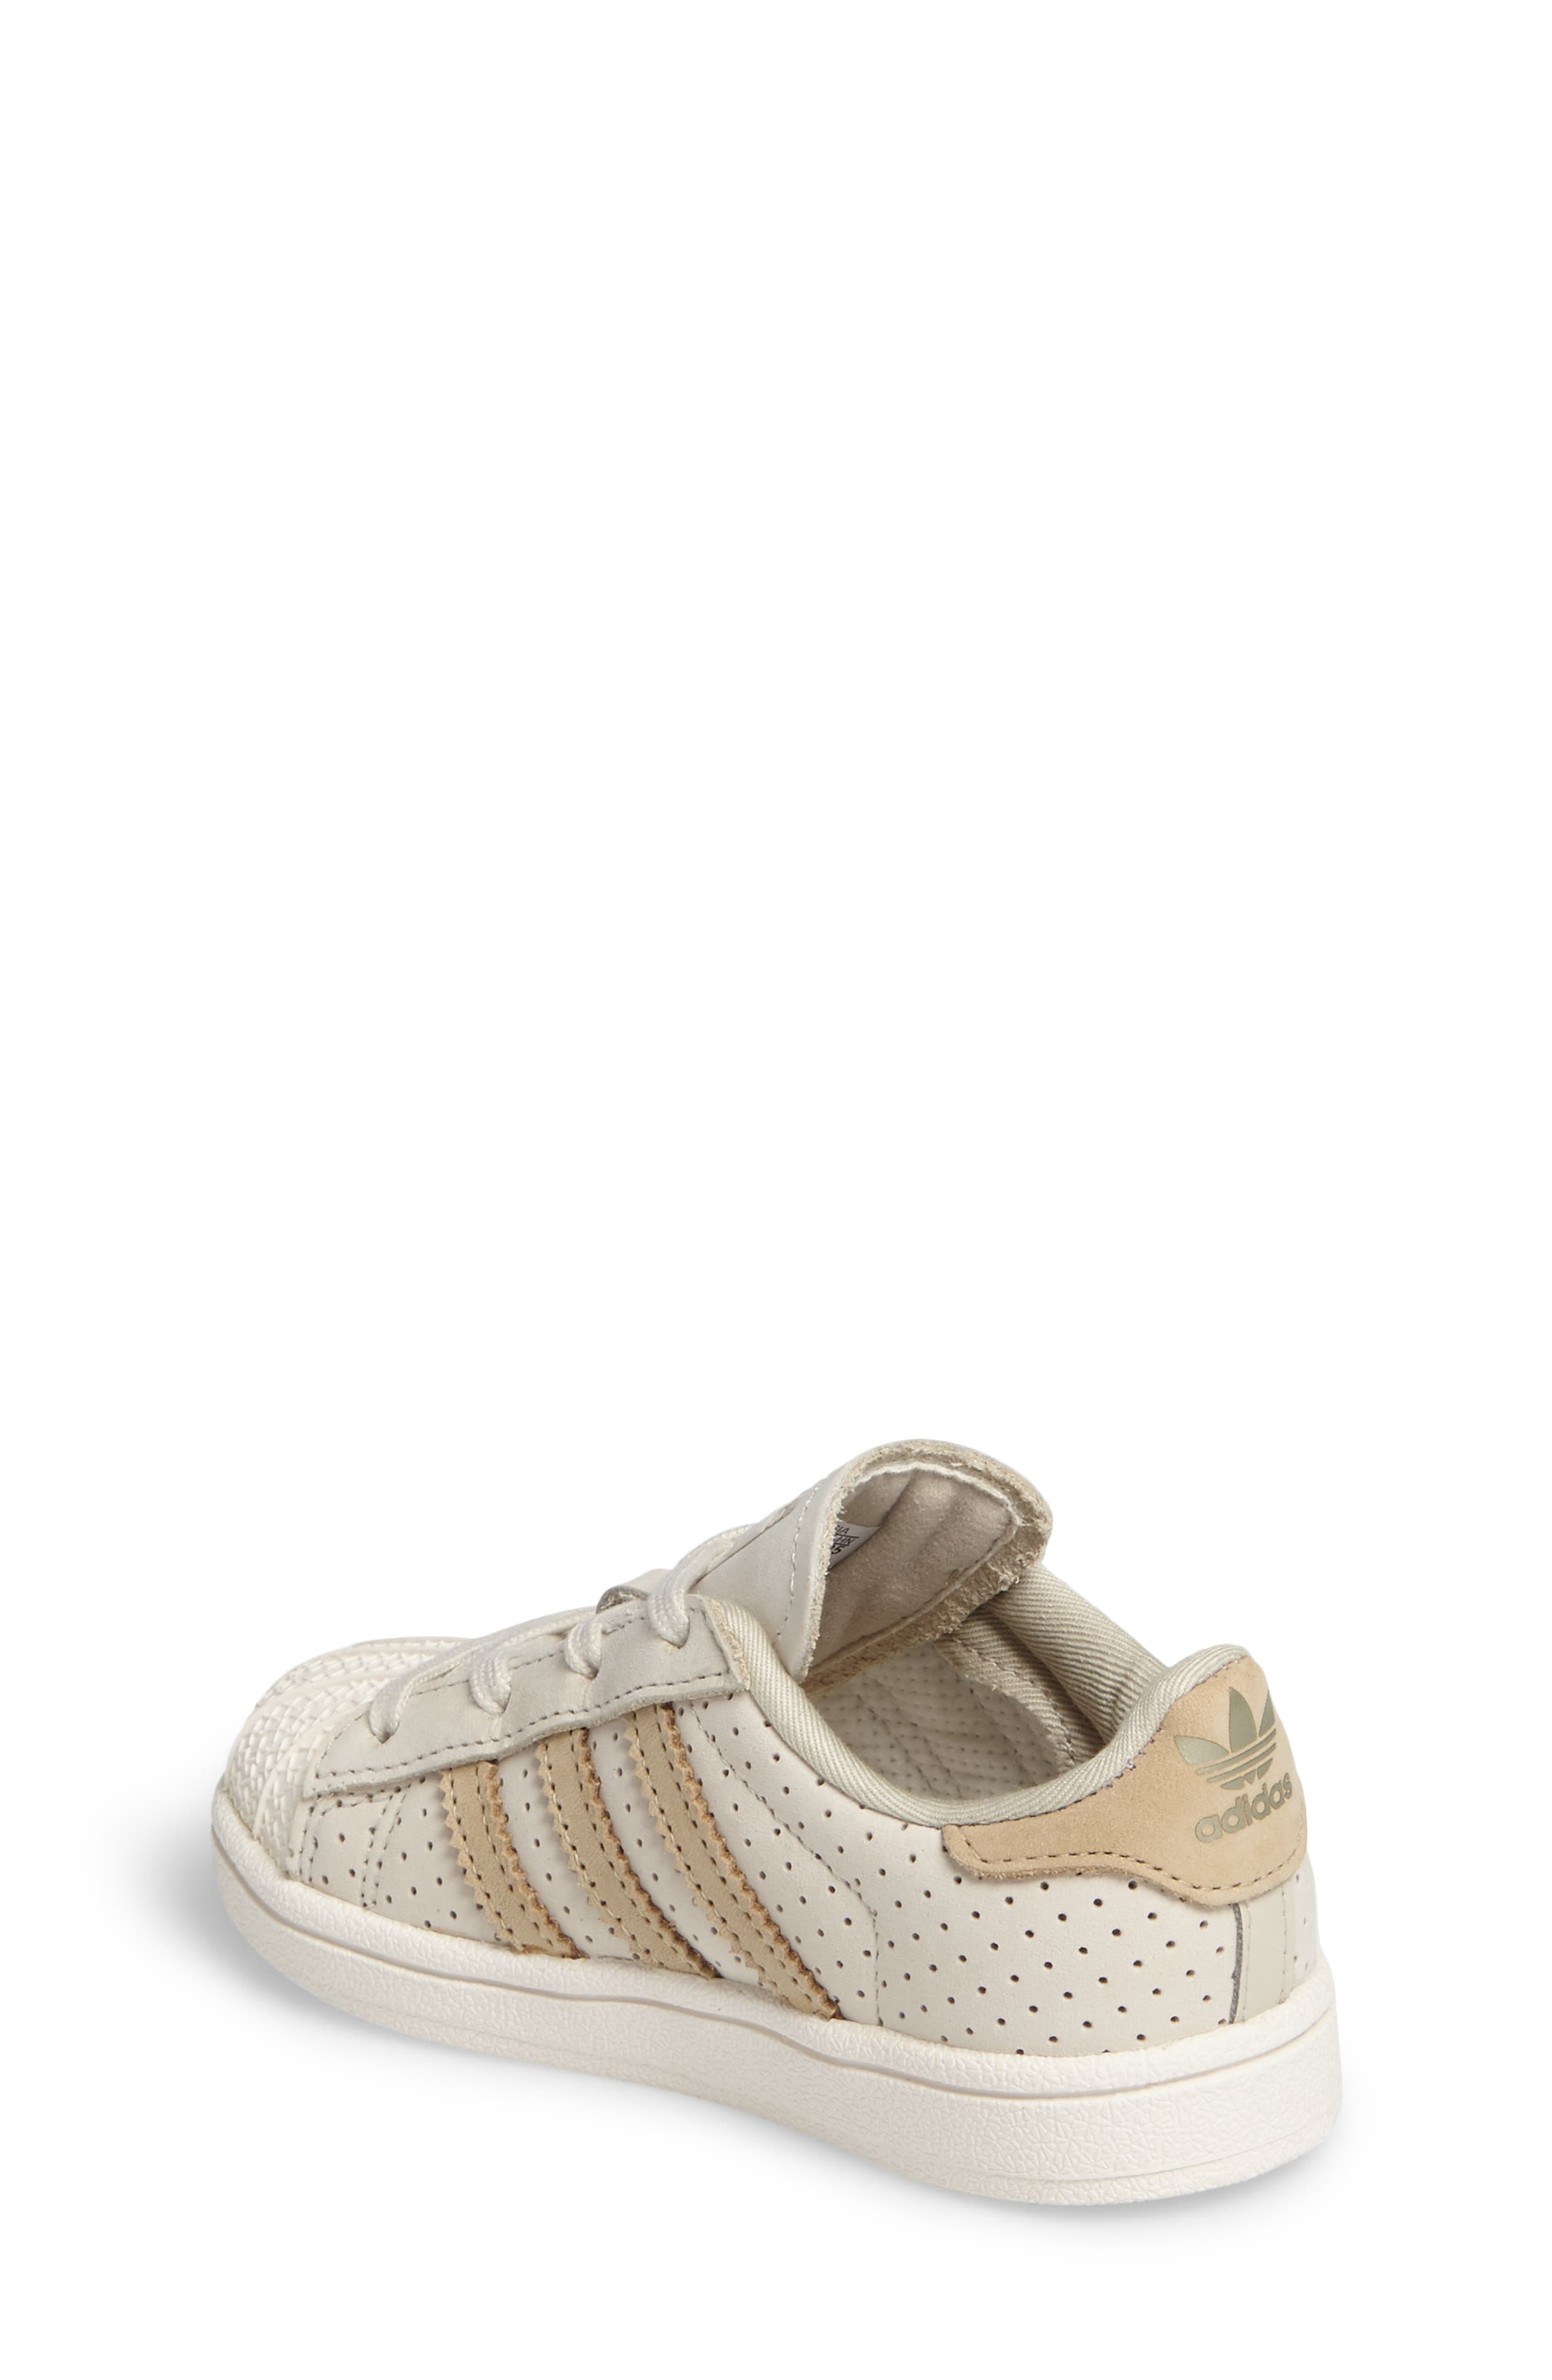 Alternate Image 2  - adidas Stan Smith Fashion I Perforated Sneaker (Baby, Walker, Toddler & Little Kid)